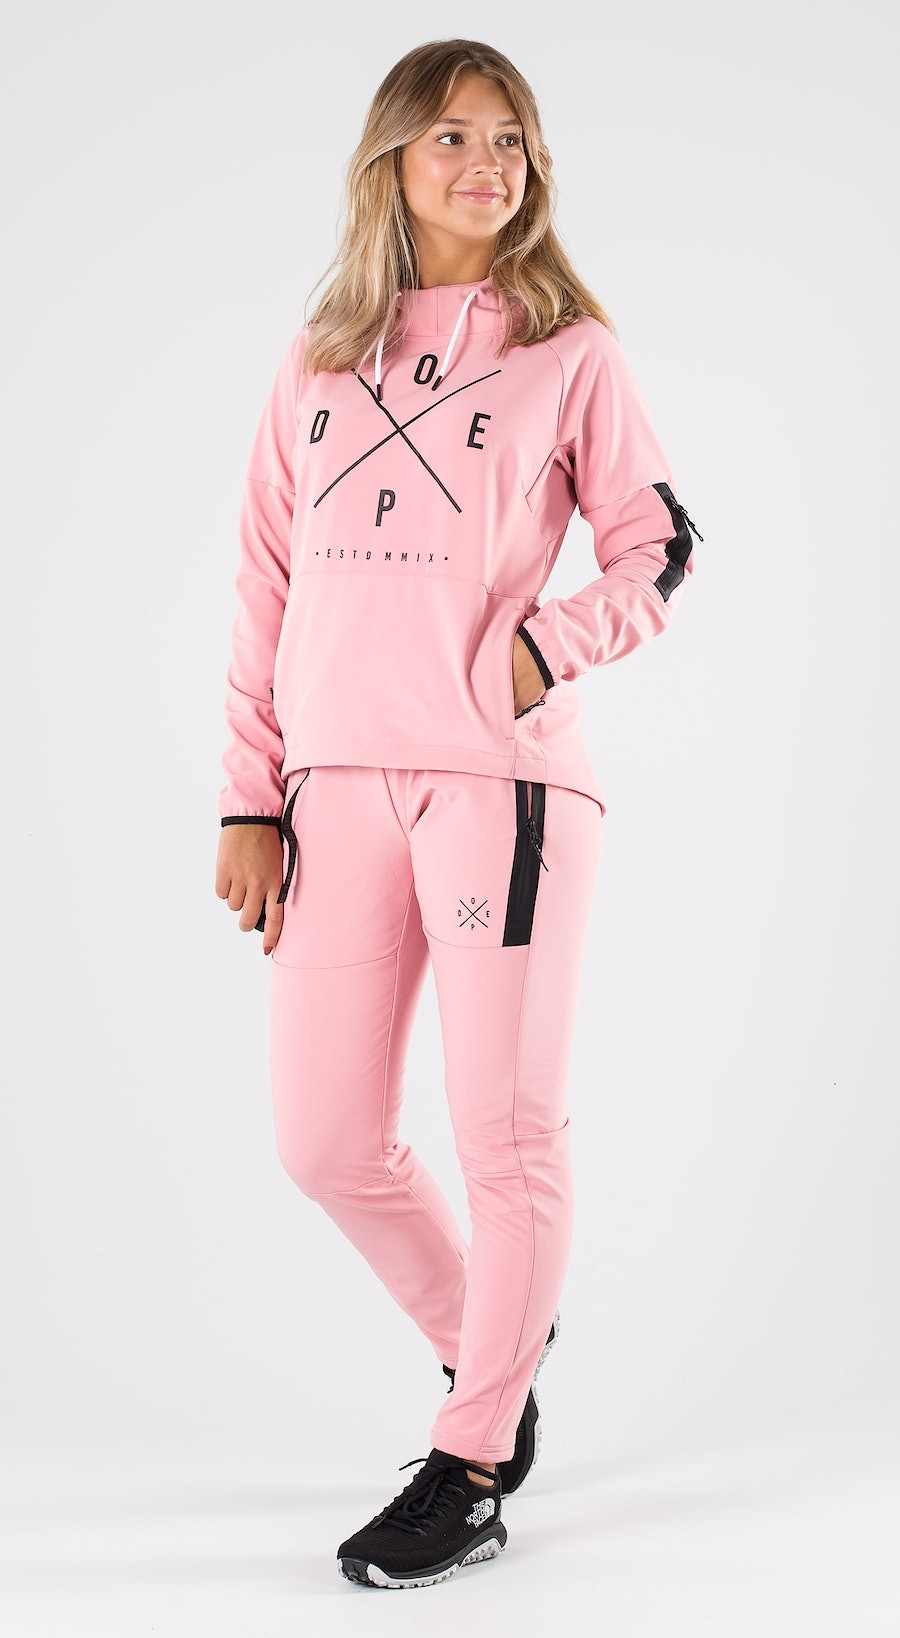 Dope Rambler Pink Outfit Multi